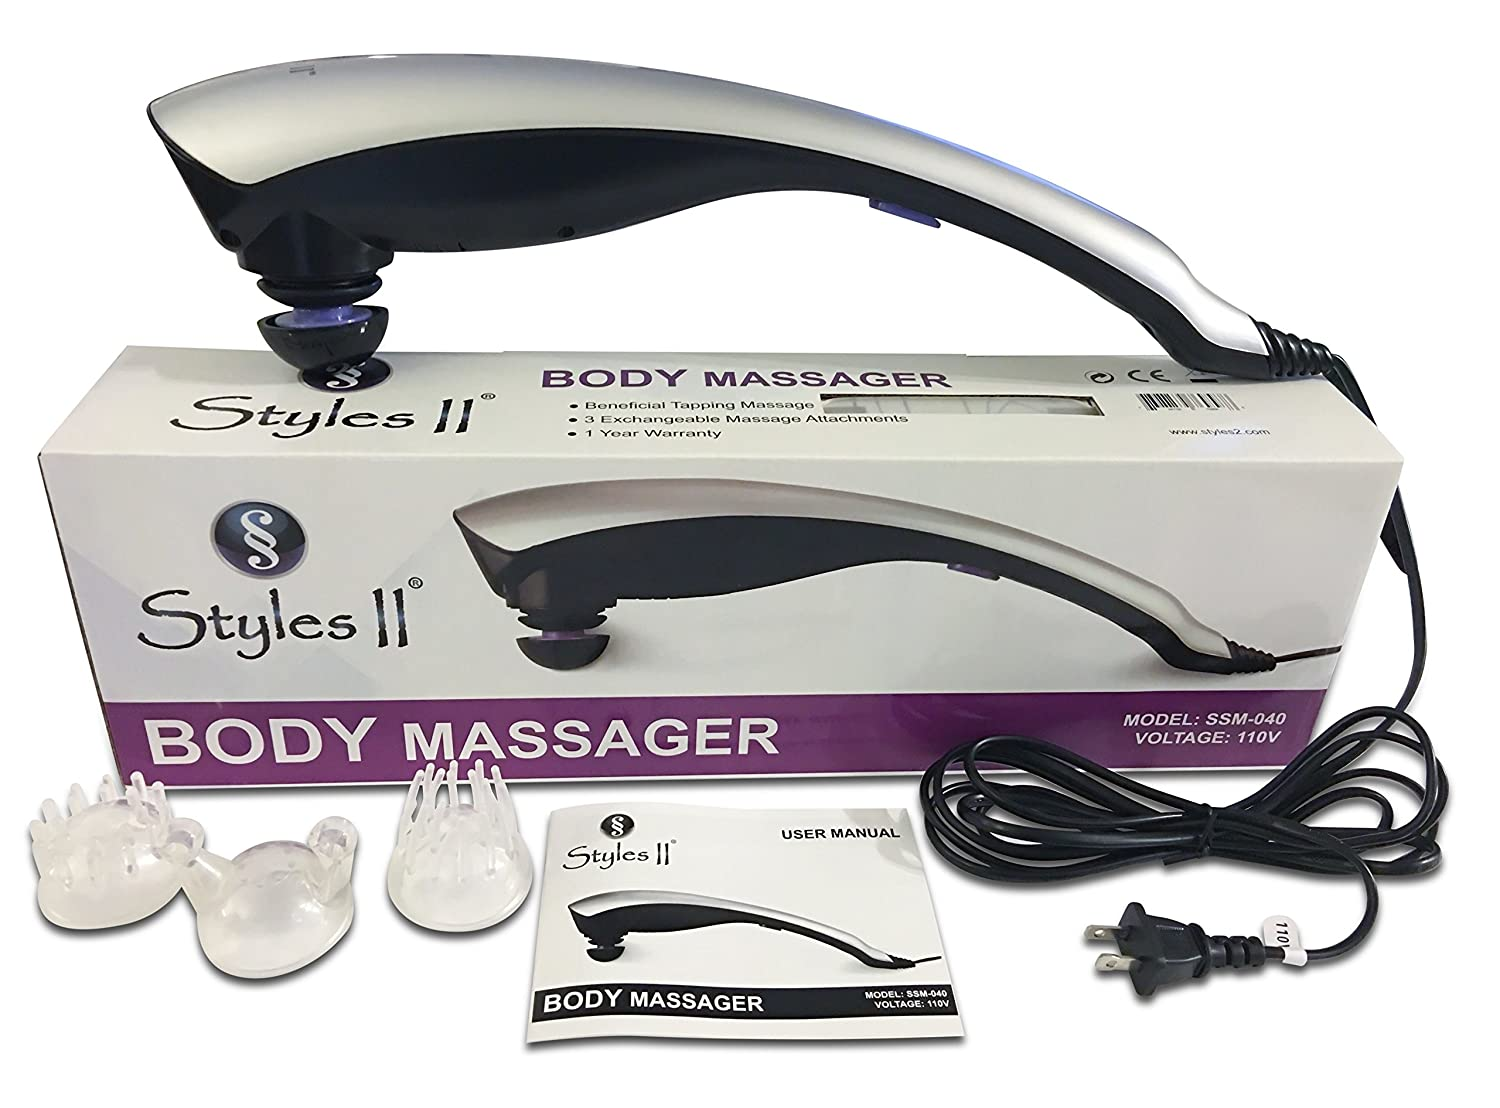 SS Styles II Therapeutic Percussion Body Massager – 3 Variable Attachments To Relieve Knots, Pains, Stiffness Fatigue In Neck, Shoulders, Feet, Hips, Back, Thigh More – Great For Home Travel Use